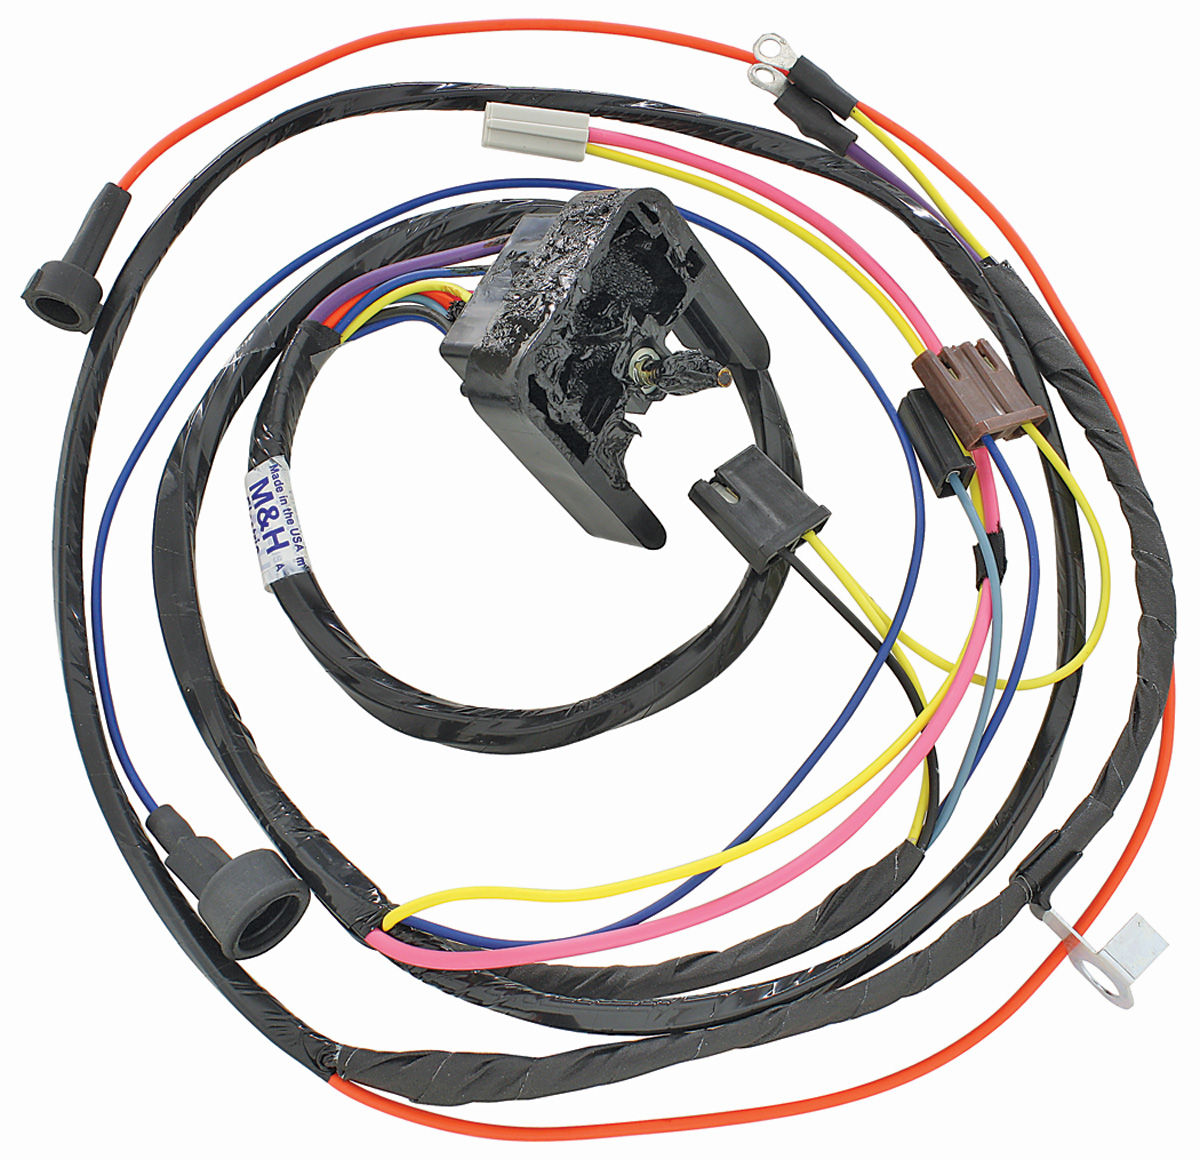 Wiring Harness, Engine, 1968-69 Chevelle/El Camino, 396/HEI/Warning Lights  @ OPGI.comOriginal Parts Group